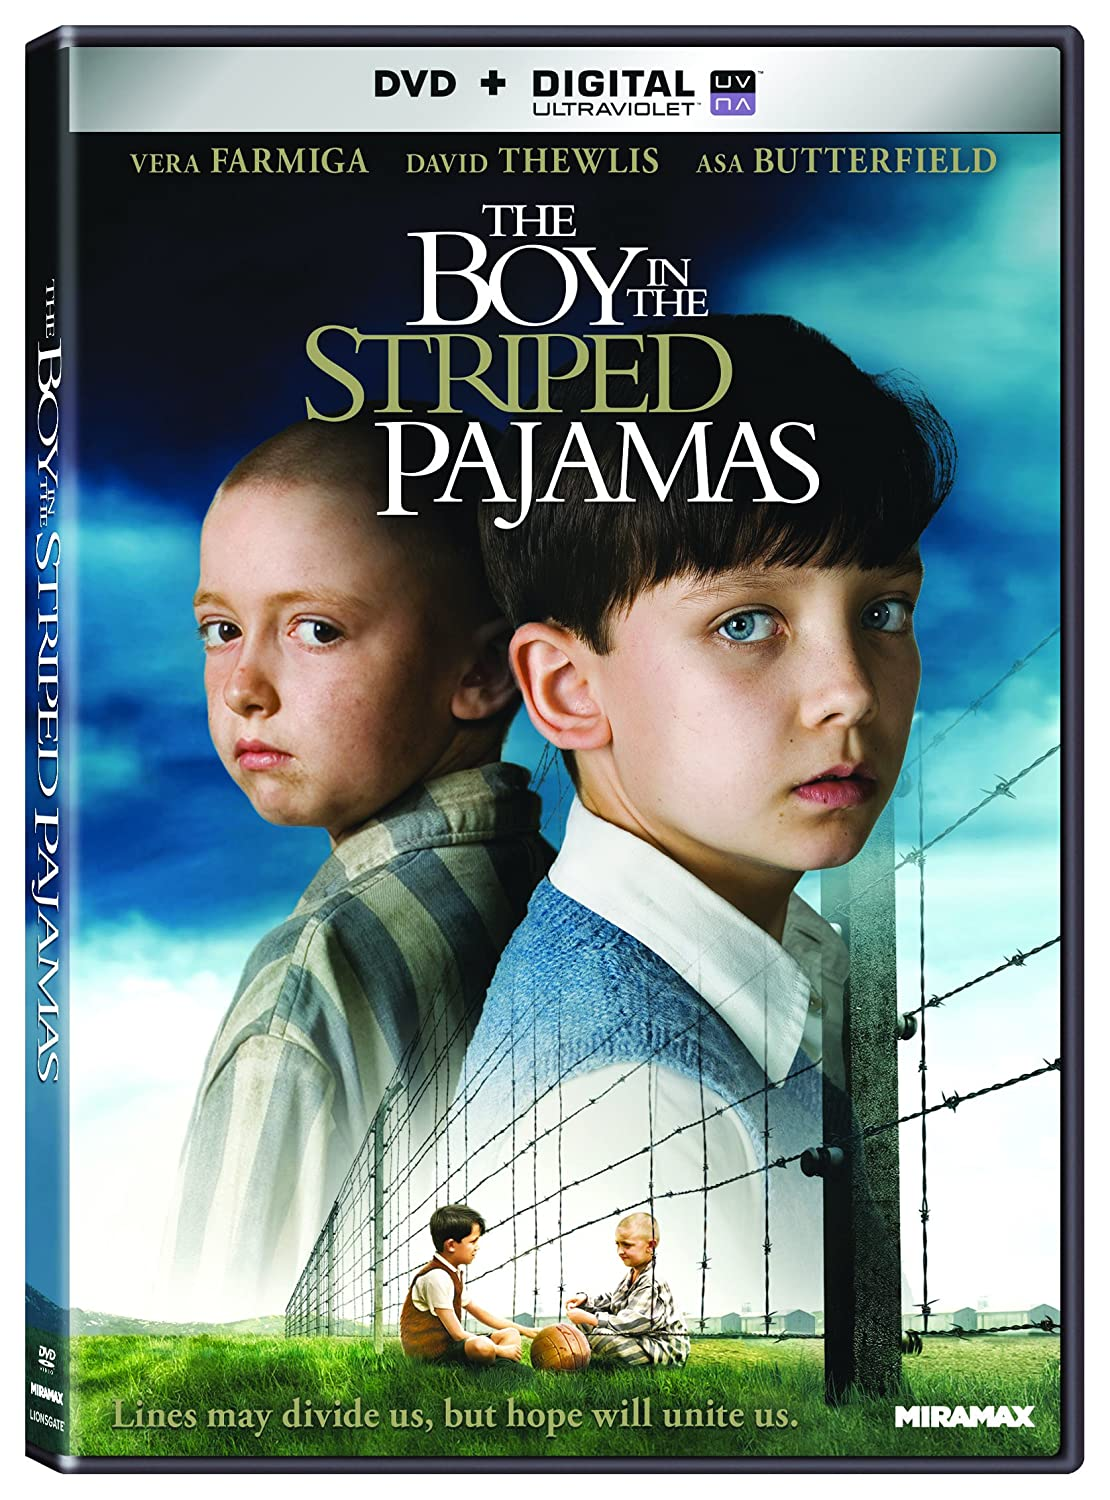 com the boy in the striped pajamas dvd digital asa com the boy in the striped pajamas dvd digital asa butterfield david thewlis rupert friend zac mattoon o brien domonkos neacutemeth